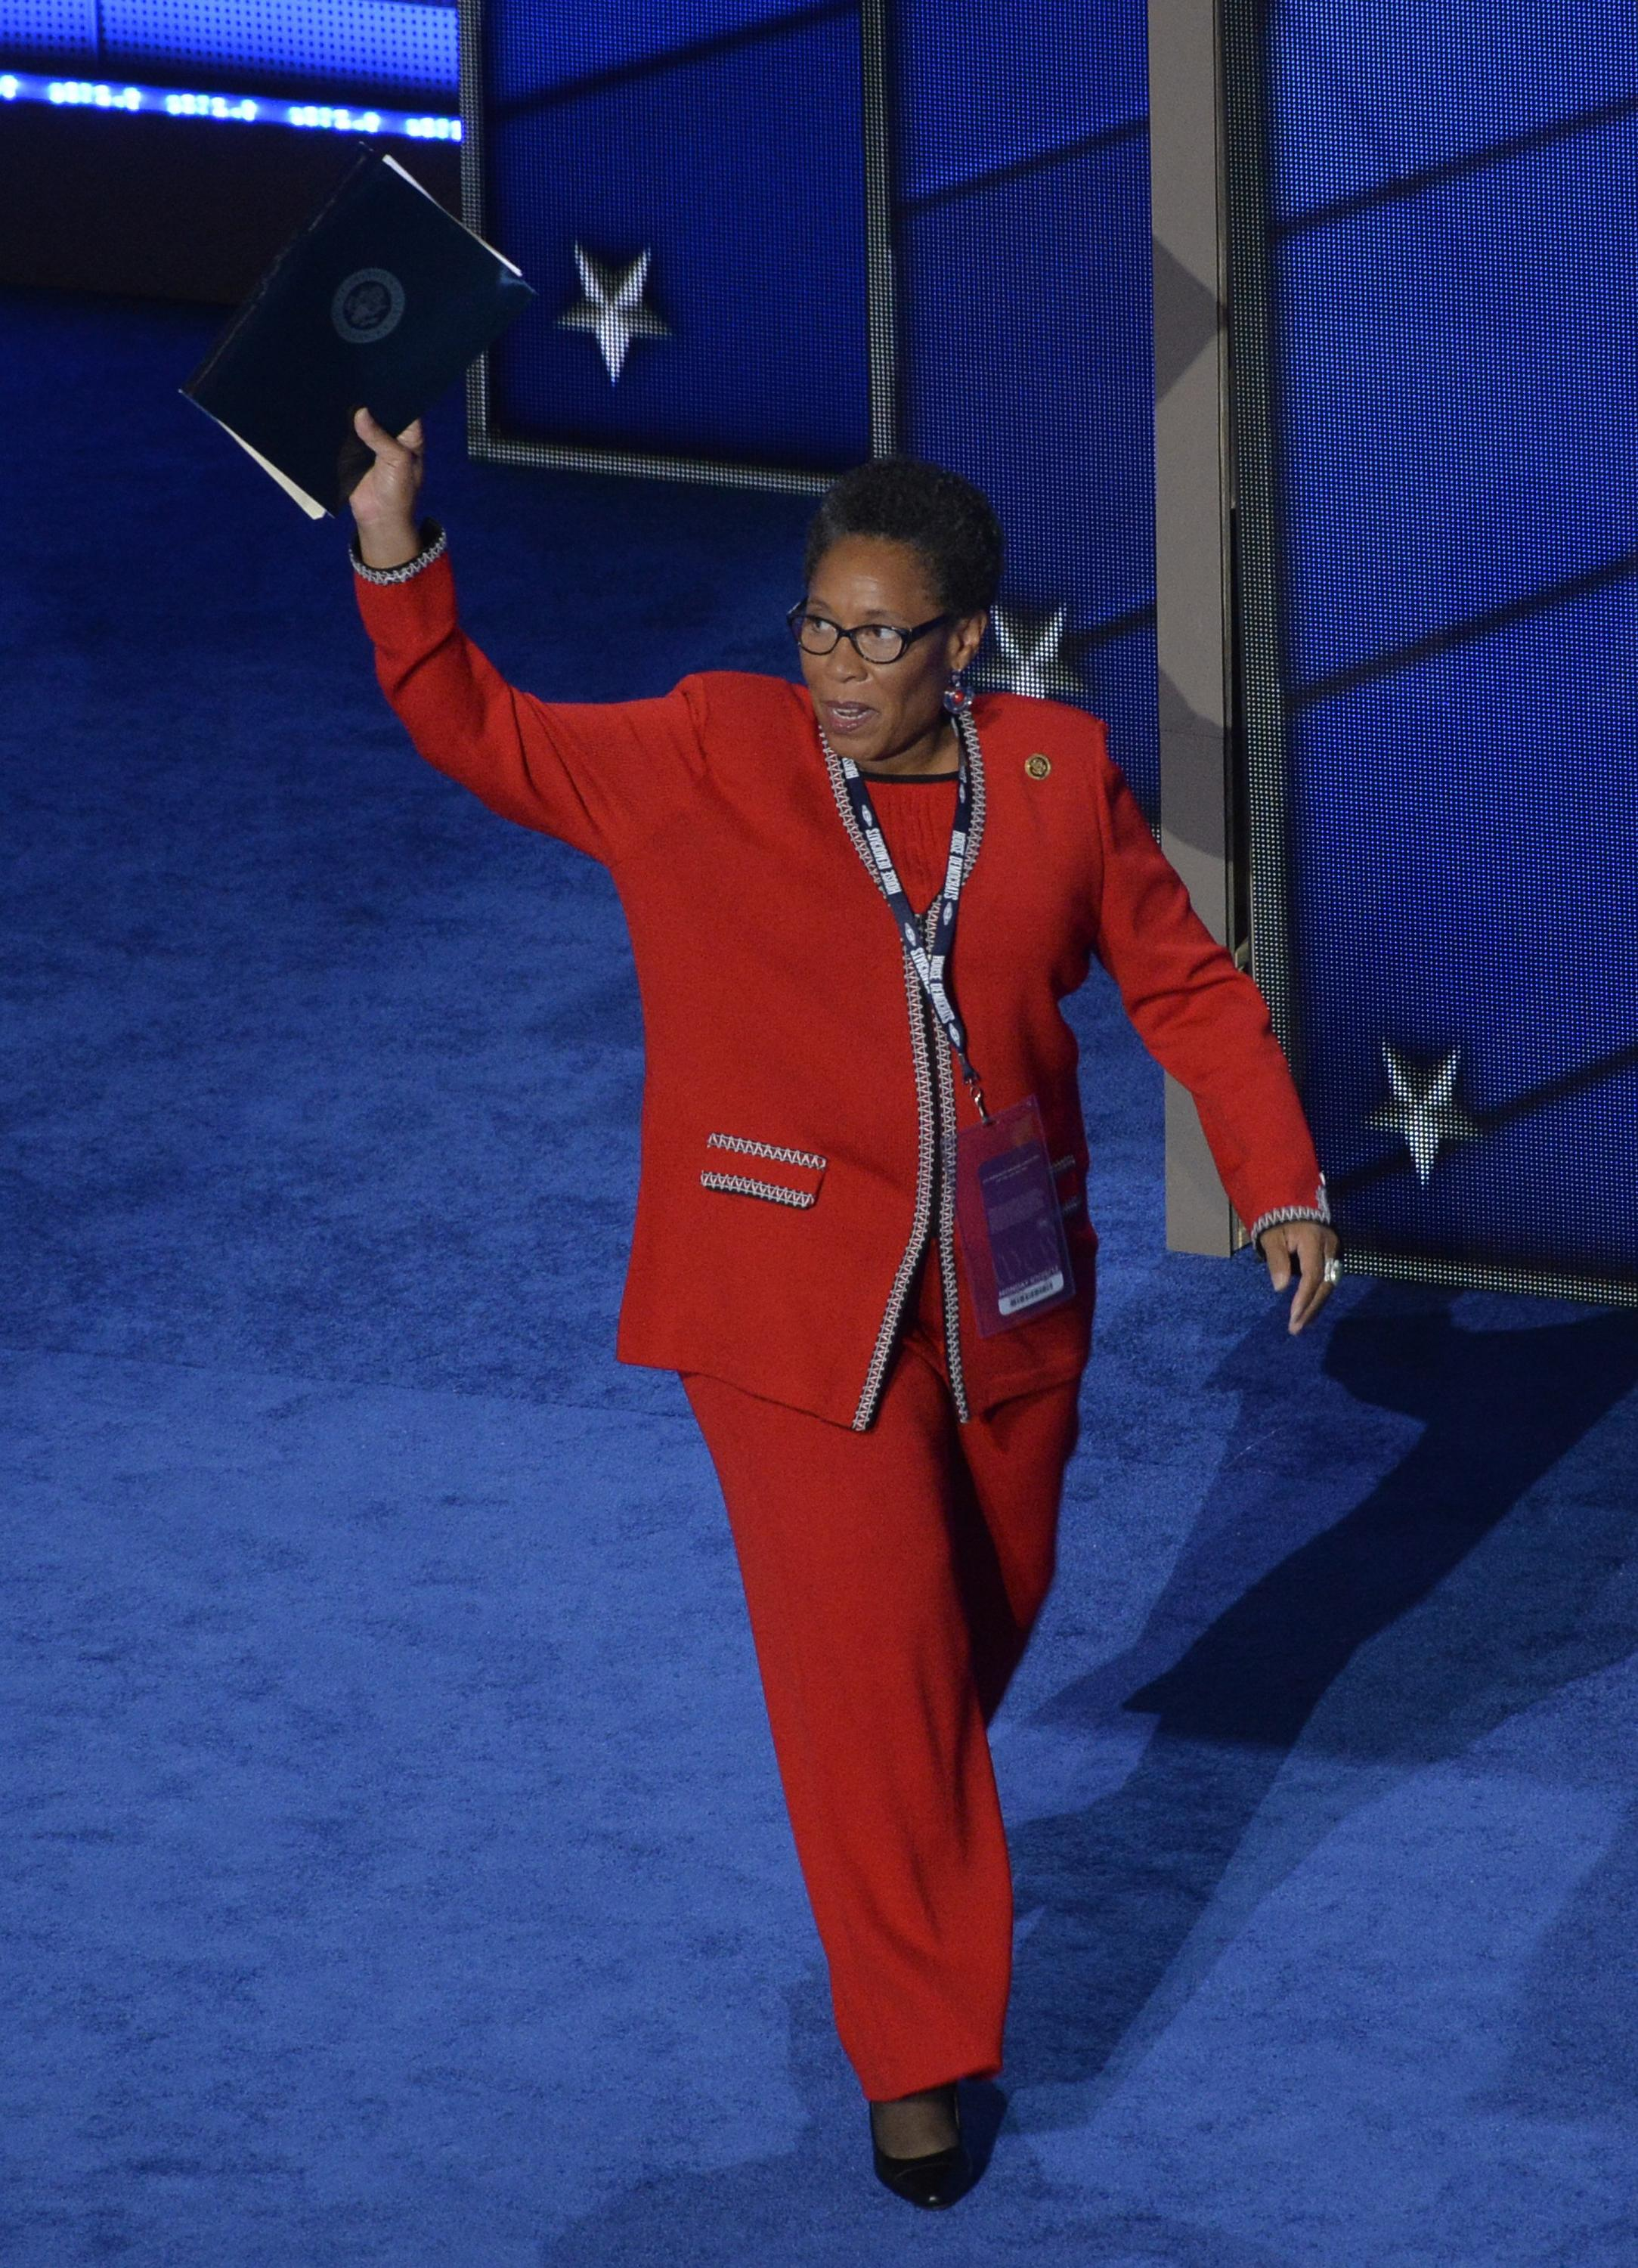 Representative Marcia Fudge (D-OH) takes the stage at the Democratic National Convention in Philadelphia, Pennsylvania, U.S. July 25, 2016. Charles Mostoller